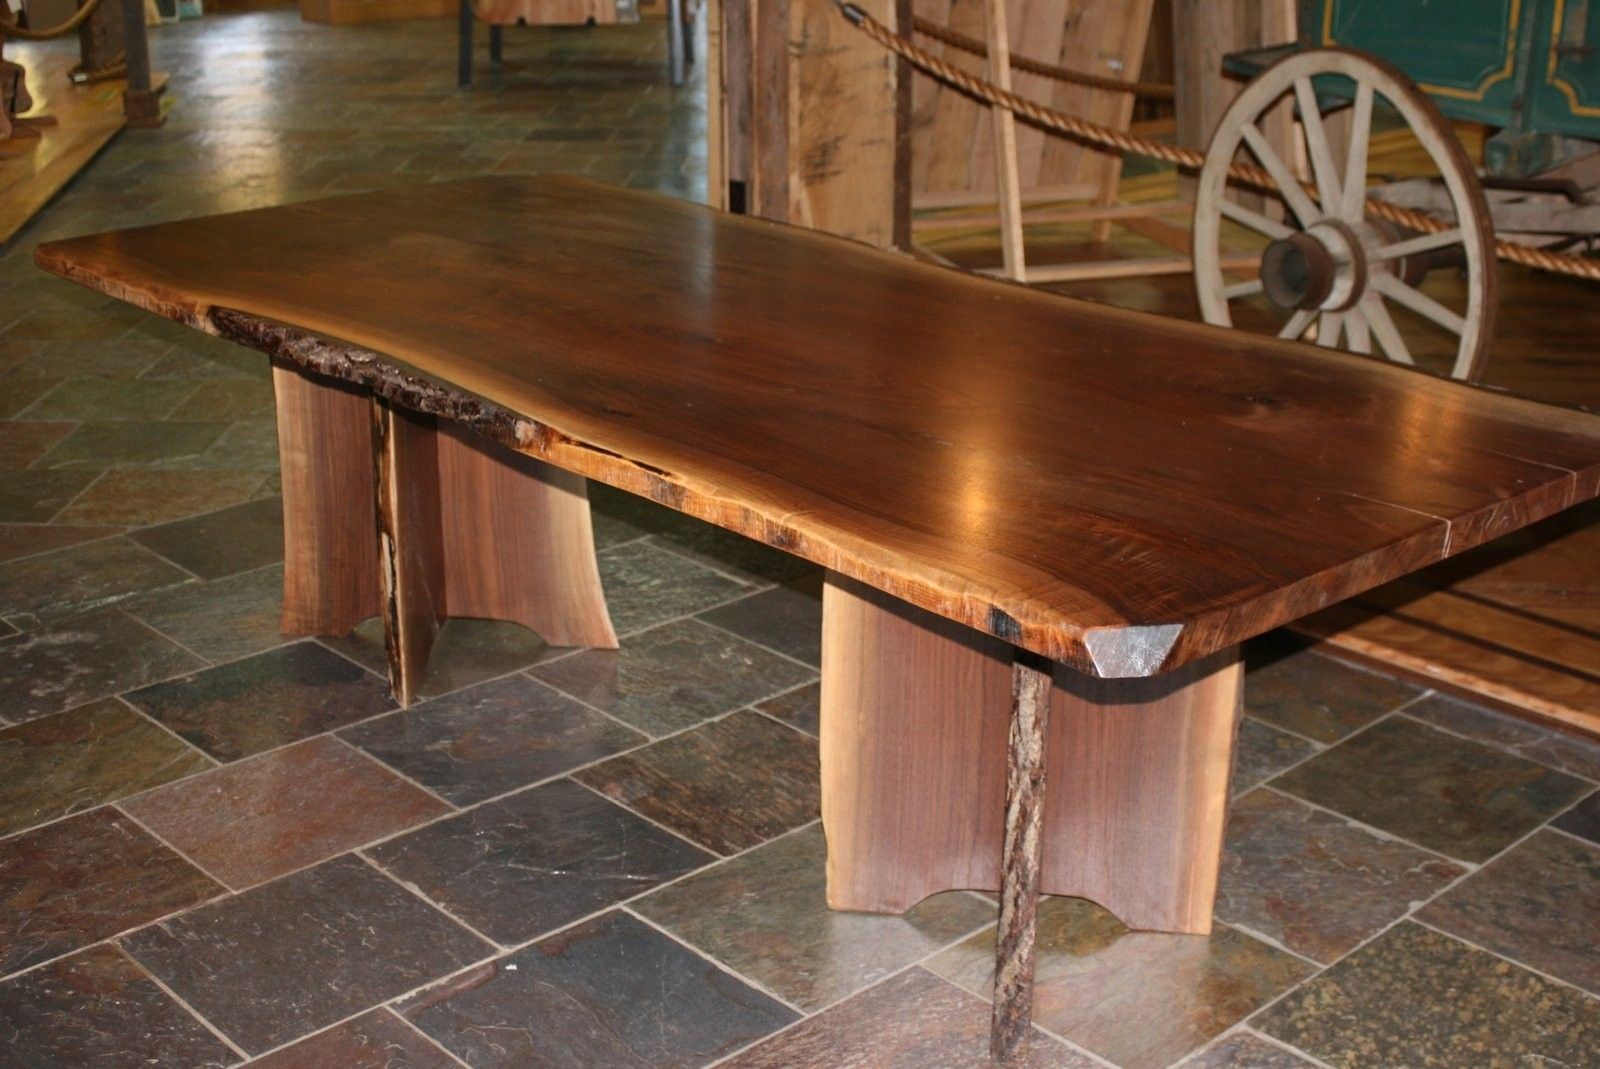 Handmade Live Edge Walnut Slab Dining Table By Corey Morgan Wood Works